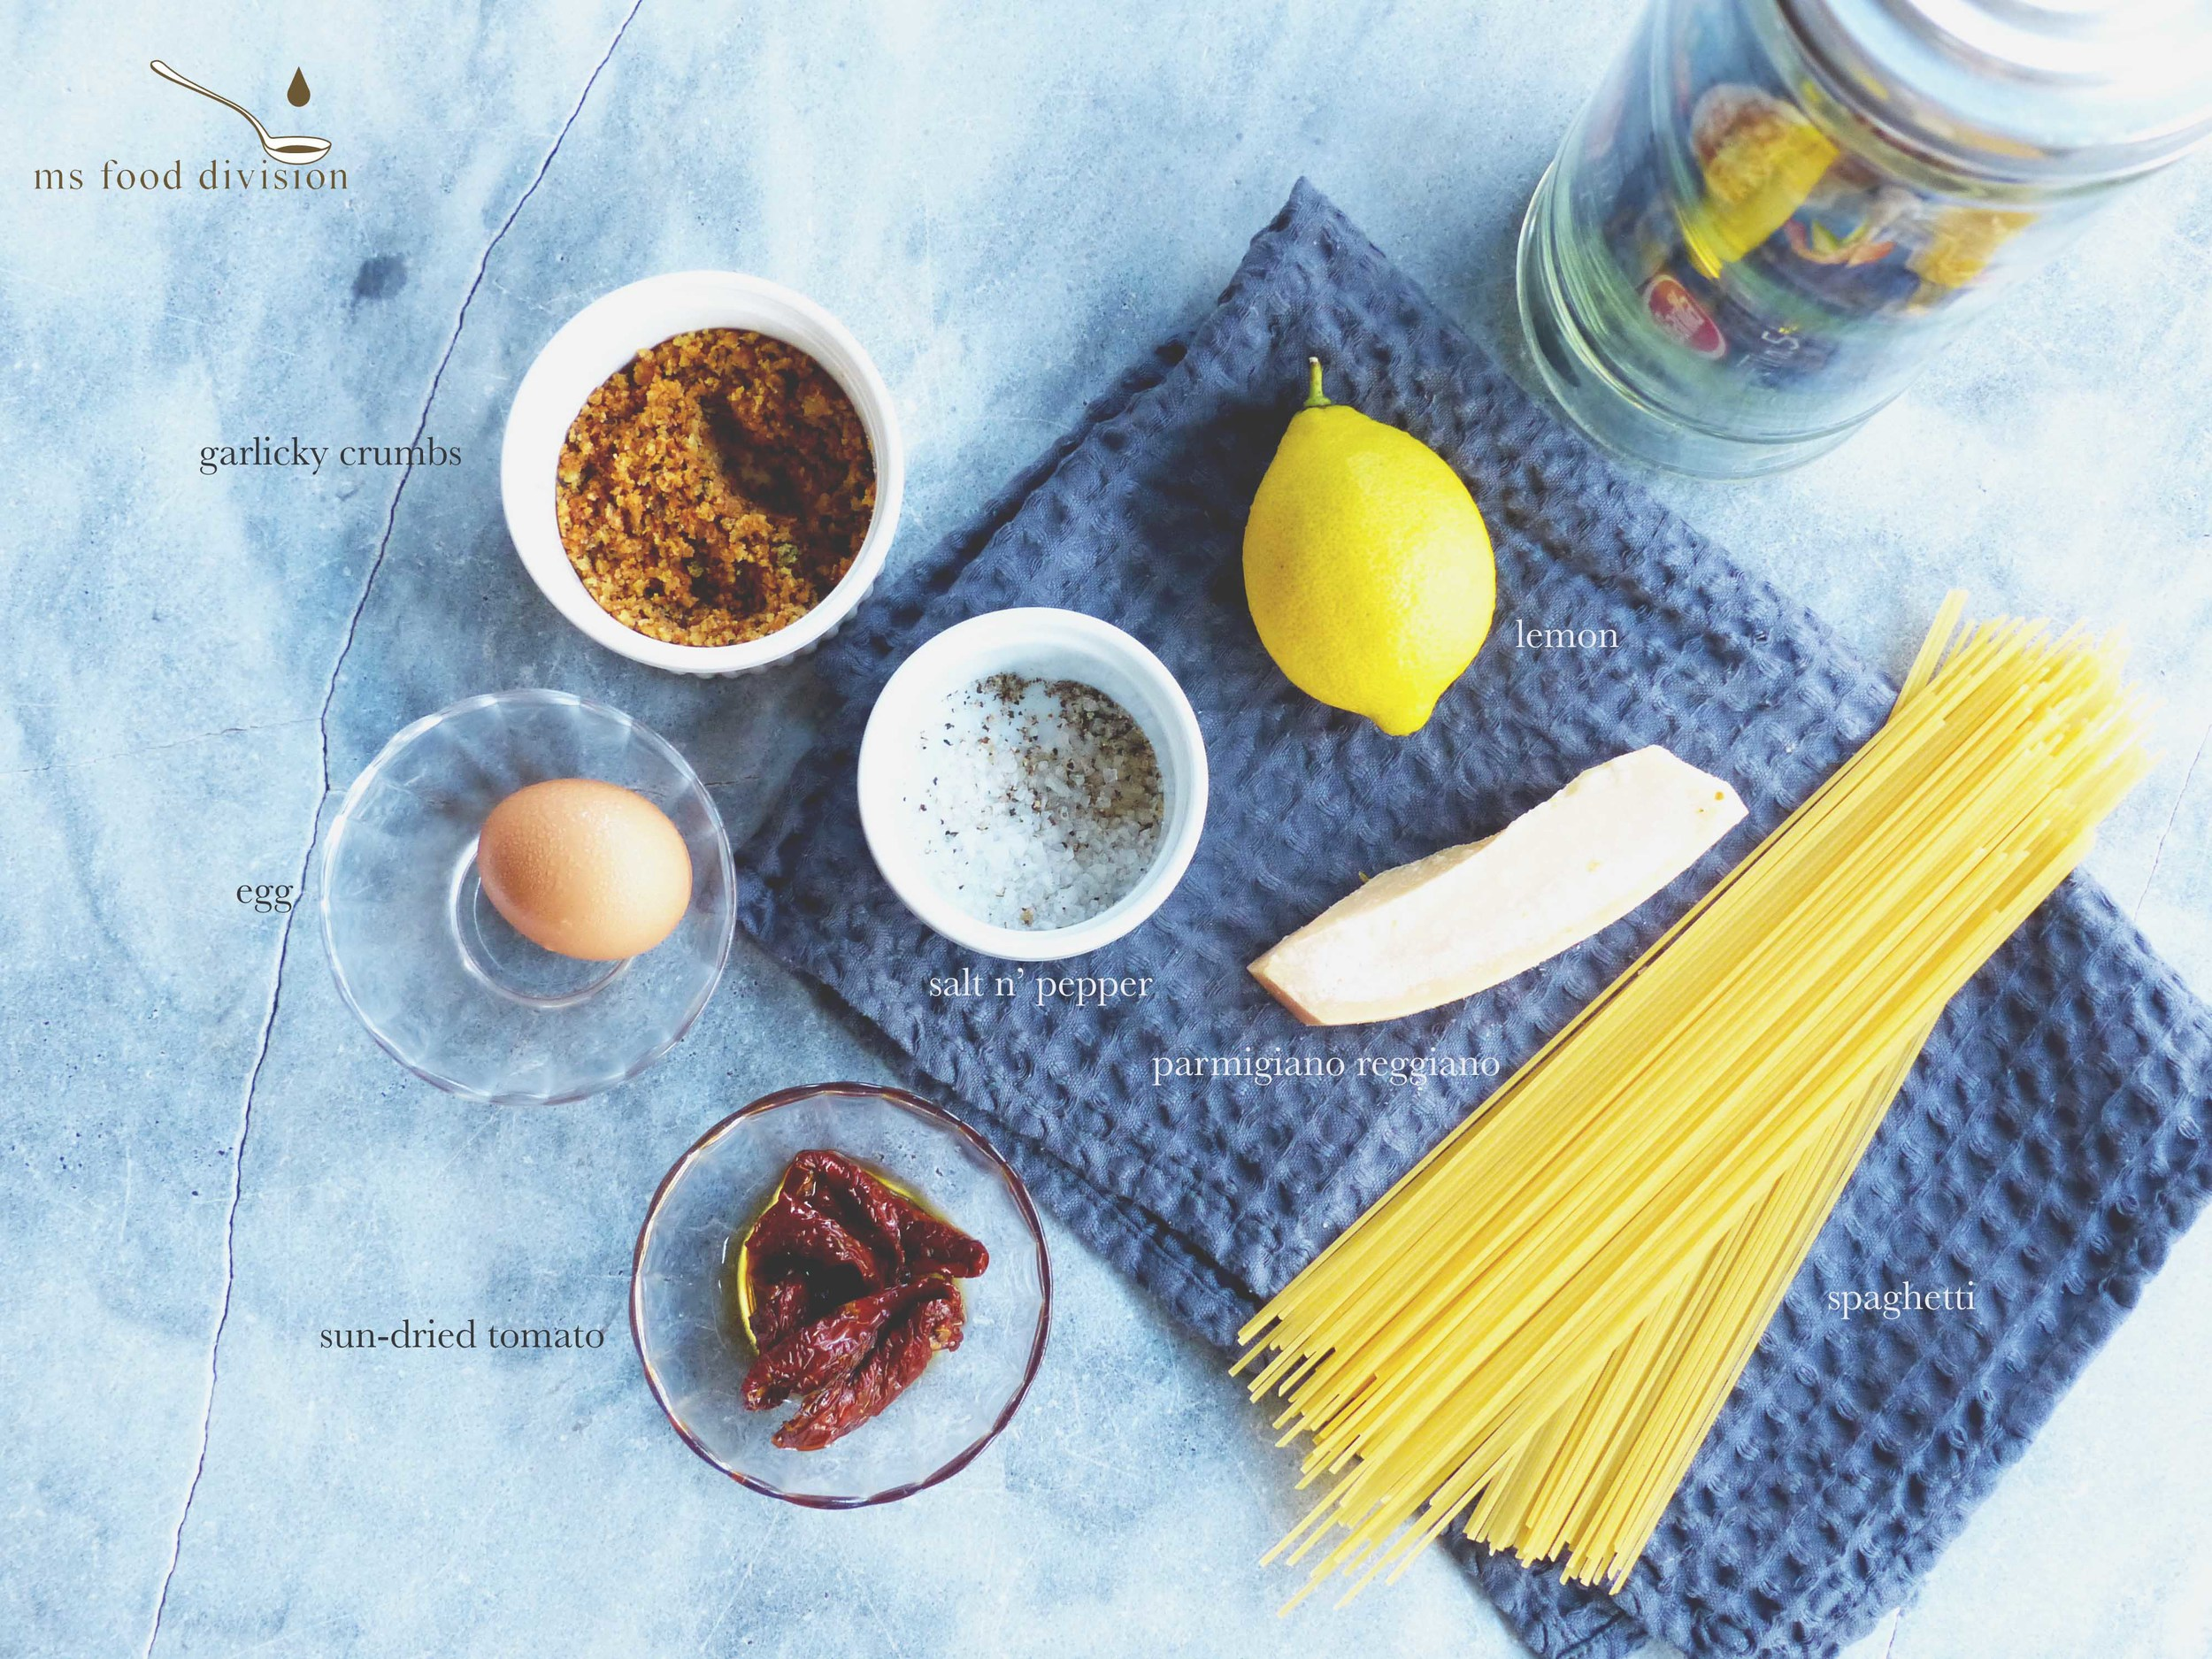 Ingredient list for ms carbonara :)   2-3 sun-dried tomatoes, chopped  1 egg yolk, seasoned and add 1 tbsp grated parmesan  1 tbsp parmesan (parmigianno reggiano)   1/2 lemon zest    1 tbsp garlicky breadcrumbs    1 ladle vegetable soup stock* (or you can use pasta water)    100g spaghetti, cooked according to the package label in salt water, remove from water 1 minute before it's cooked    extra-virgin olive oil